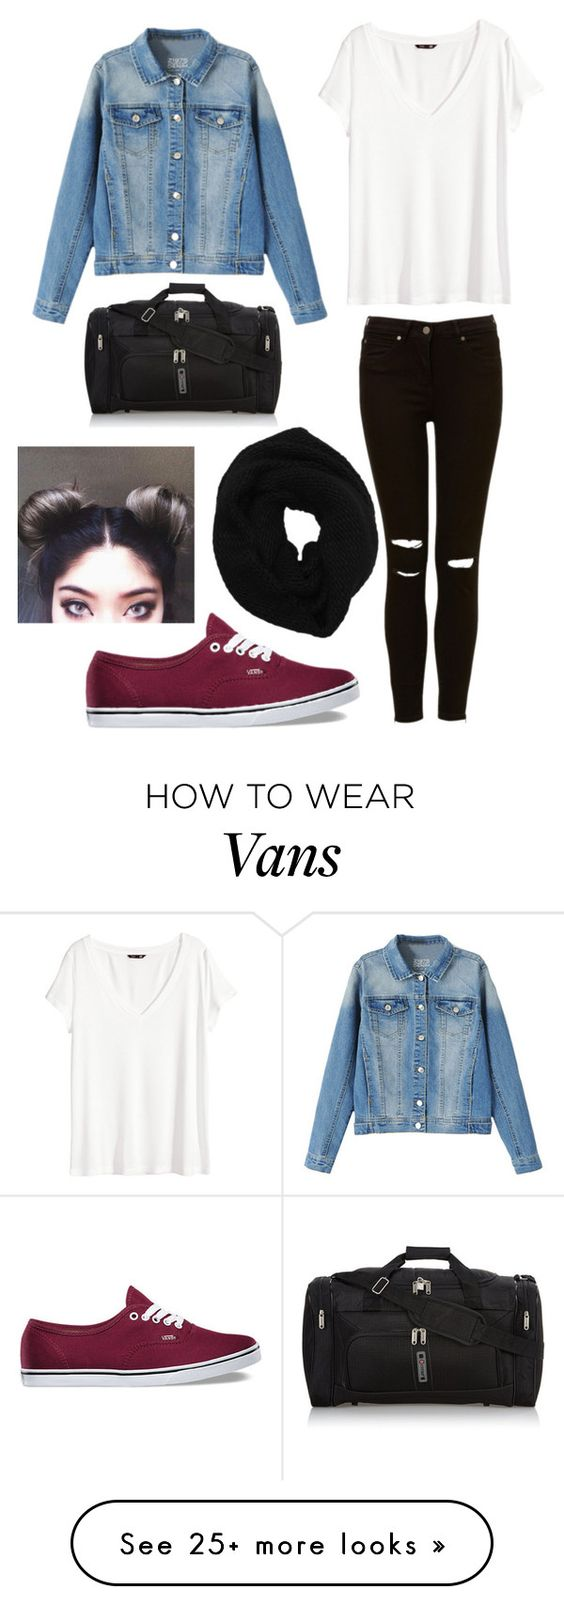 """Why are space buns so cute?????"" by bunnytail14 on Polyvore featuring H&M, Vans and Wyatt:"